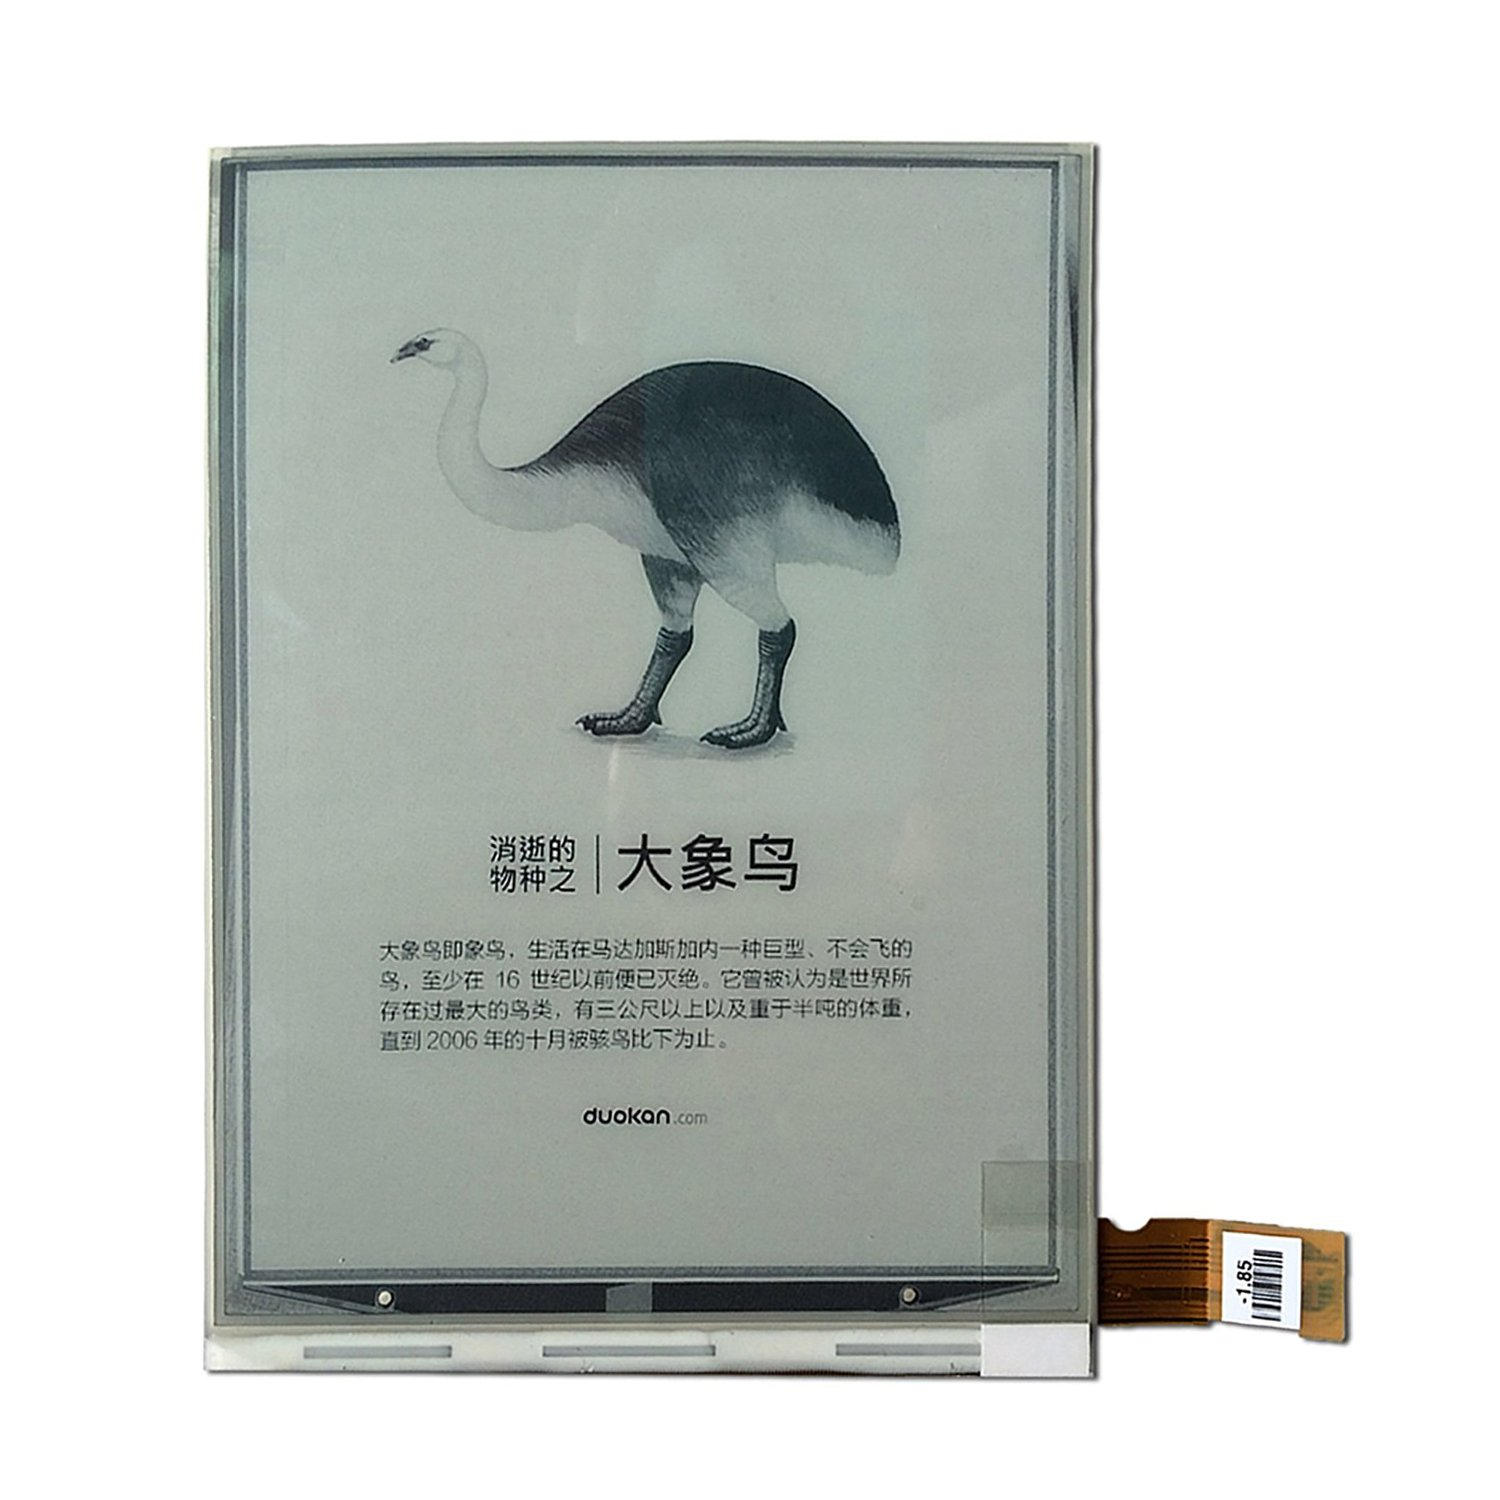 New Replacement LCD Screen for Amazon kindle 3 / KINDLE KEYBOARD D00901 / KINDLE KEYBOARD 3G Ebook Ereader Screen Repair Replacement Part E-ink LCD Display Panel ED060SC7(LF) by XSRUPB (Image #1)